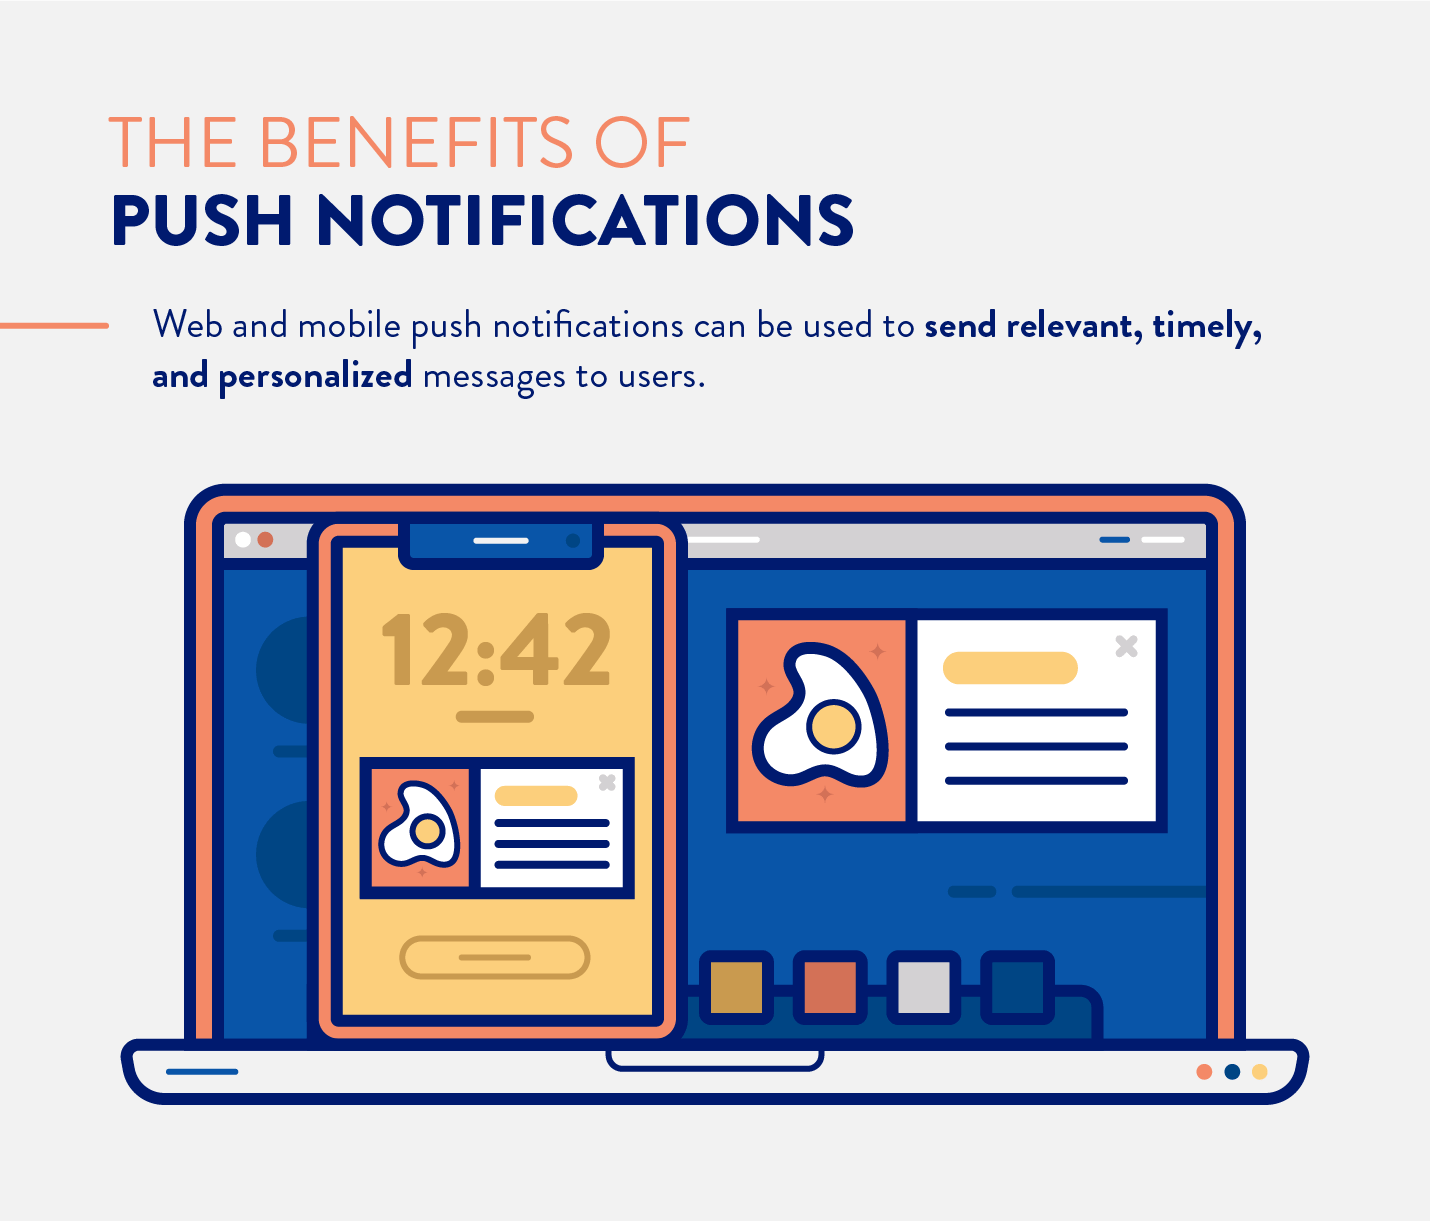 the benefits of push notifications including web and mobile which can be used to send timely, relevant, and personalized messages.